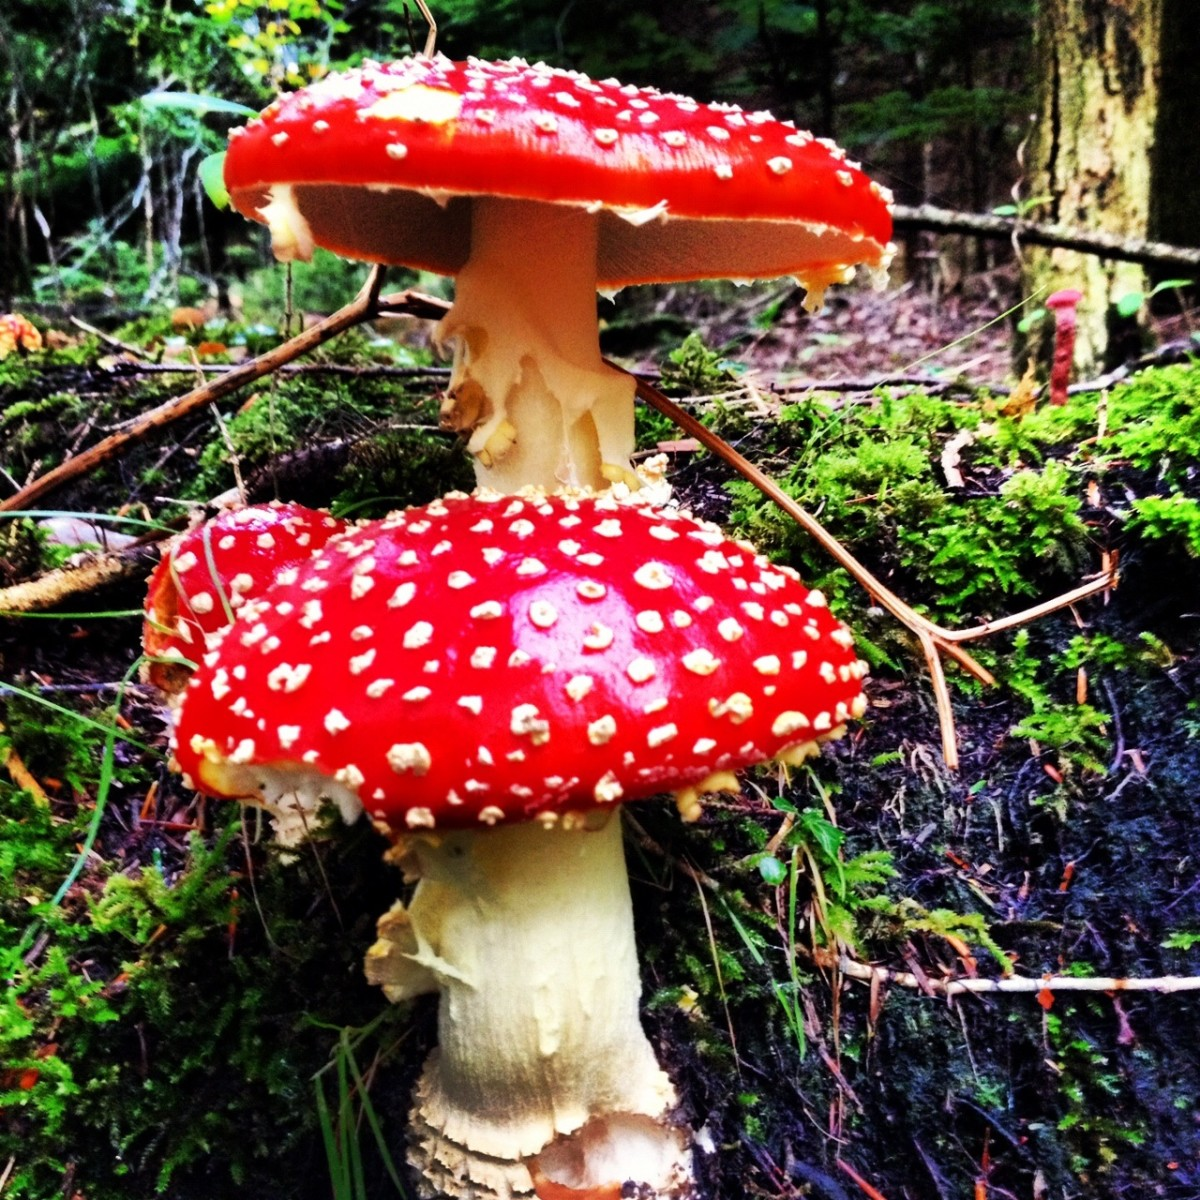 Picking Edible Wild Mushrooms, Wild Mushroom Hunting POISONOUS  fly agaric,, Do Not Eat